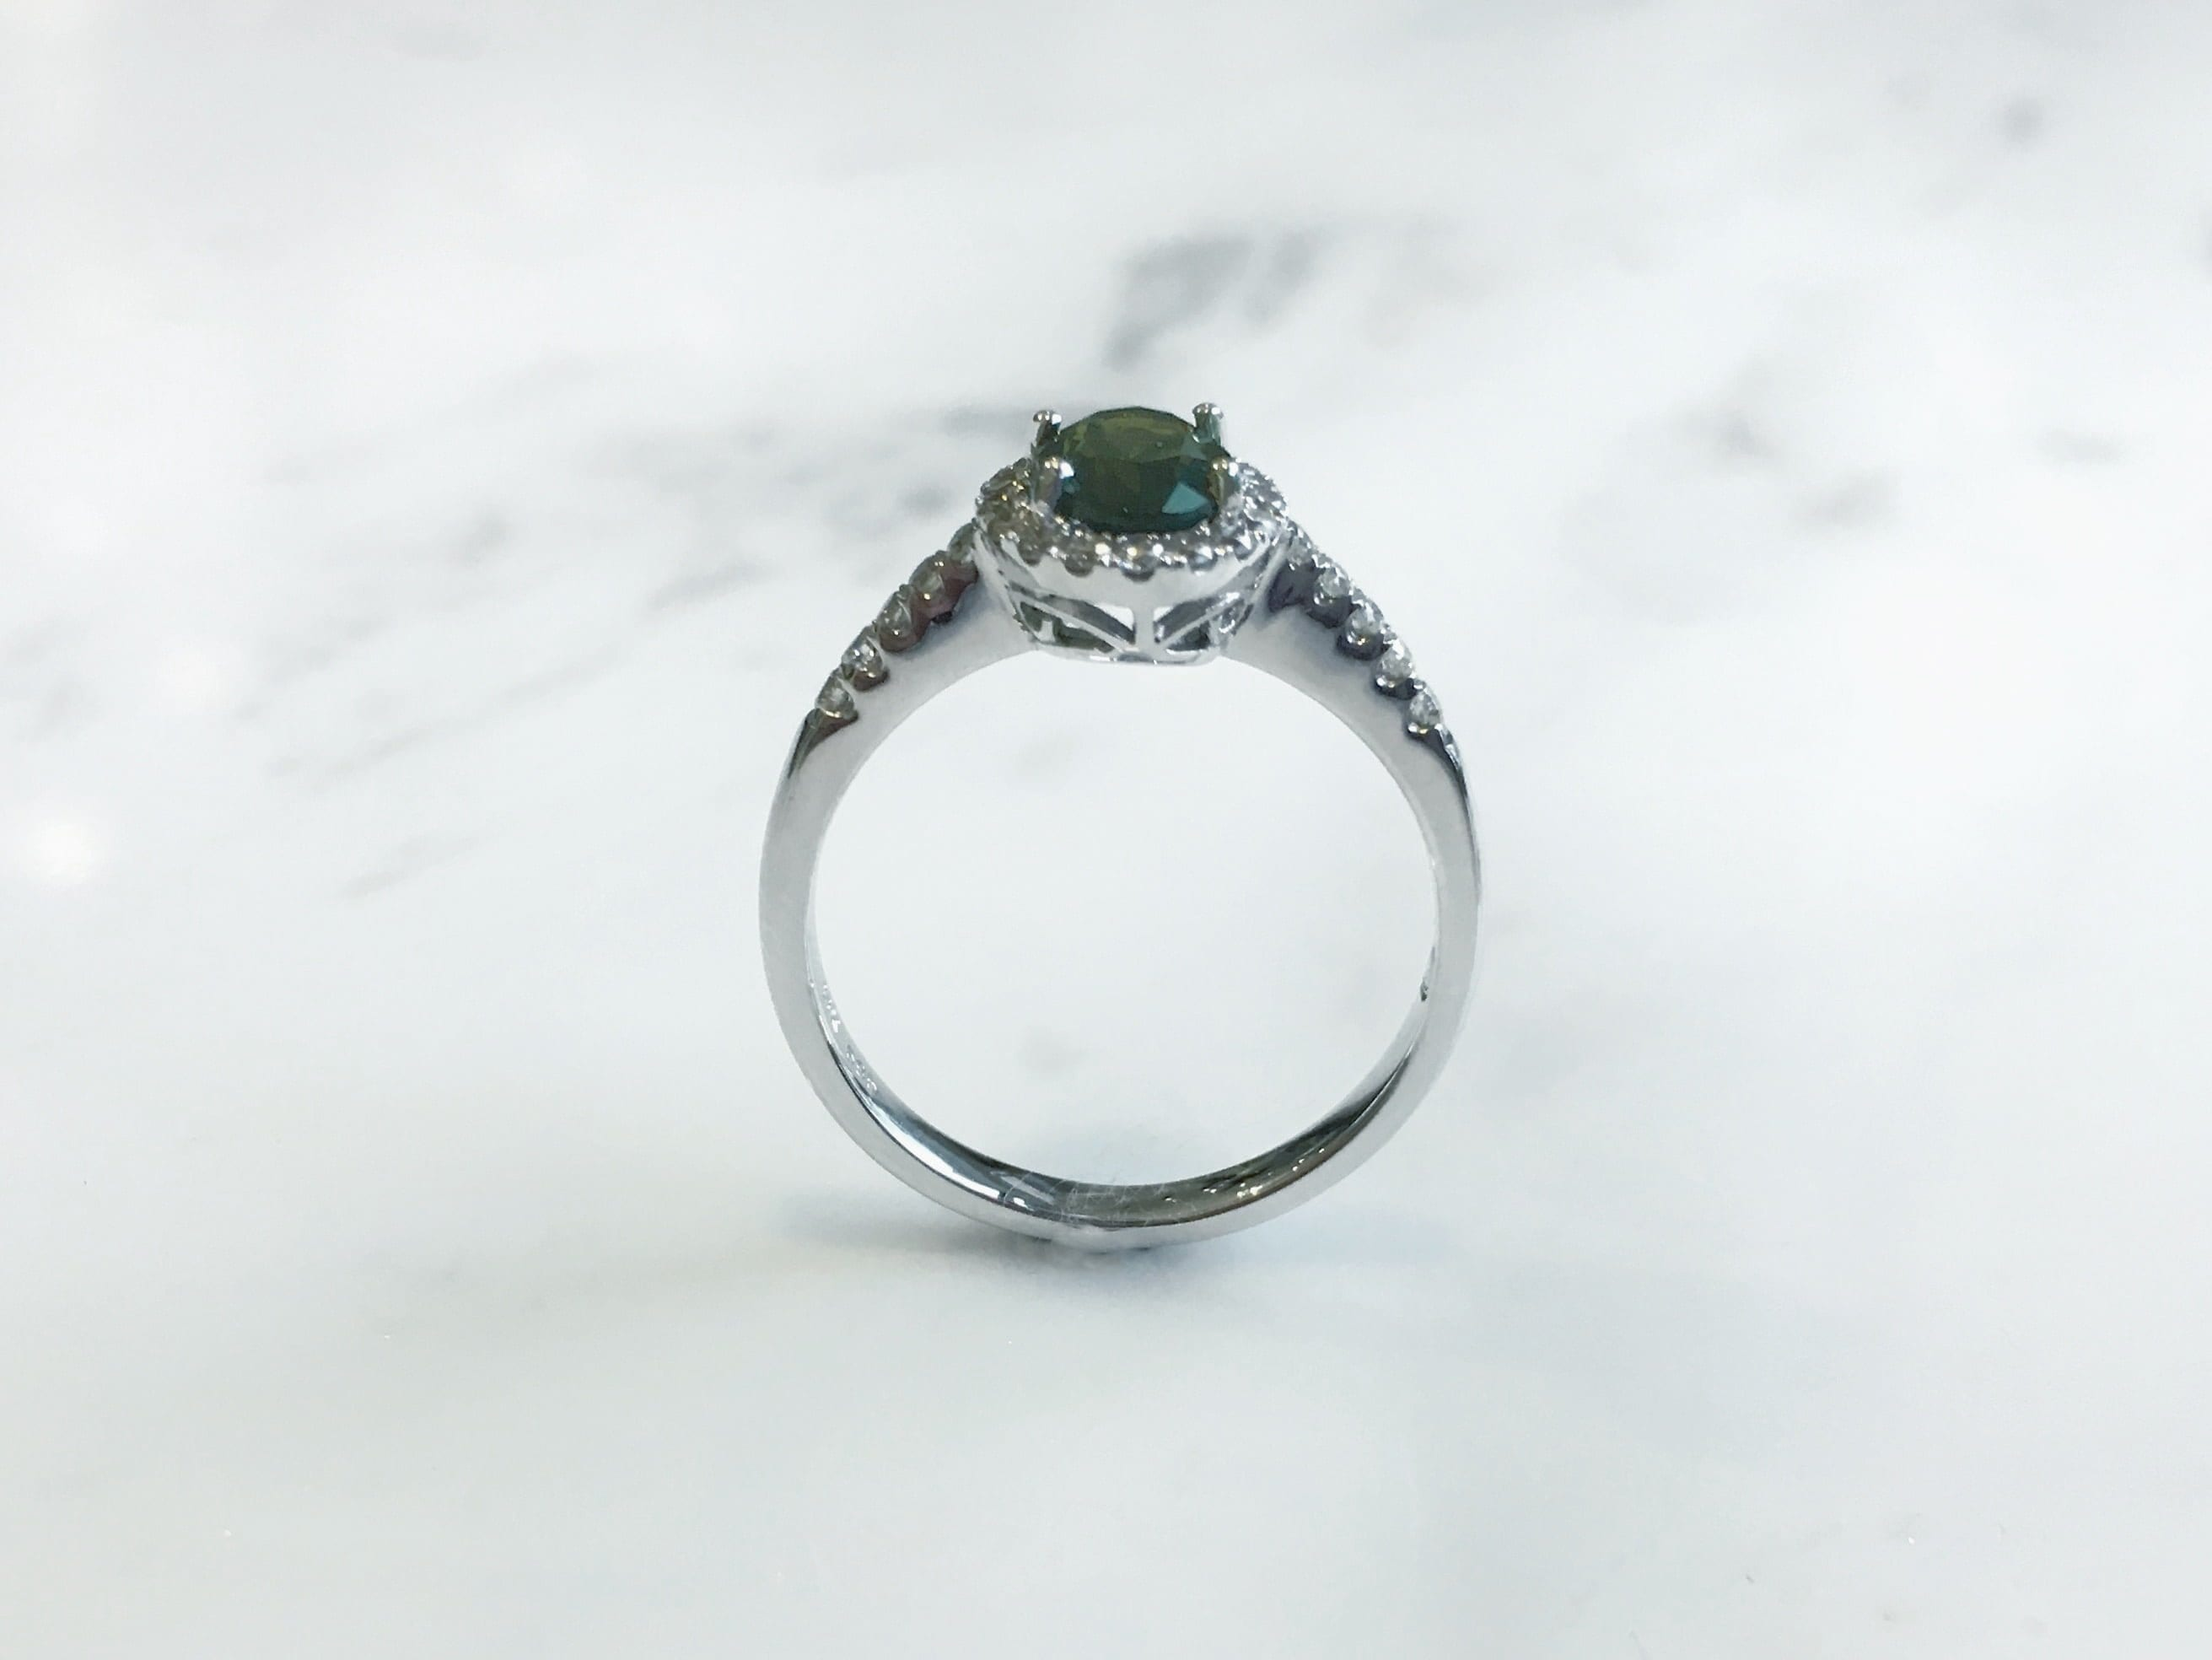 ring in uneek rings emerald pave and shank center three cut silhouette platinum stone gemstone with green